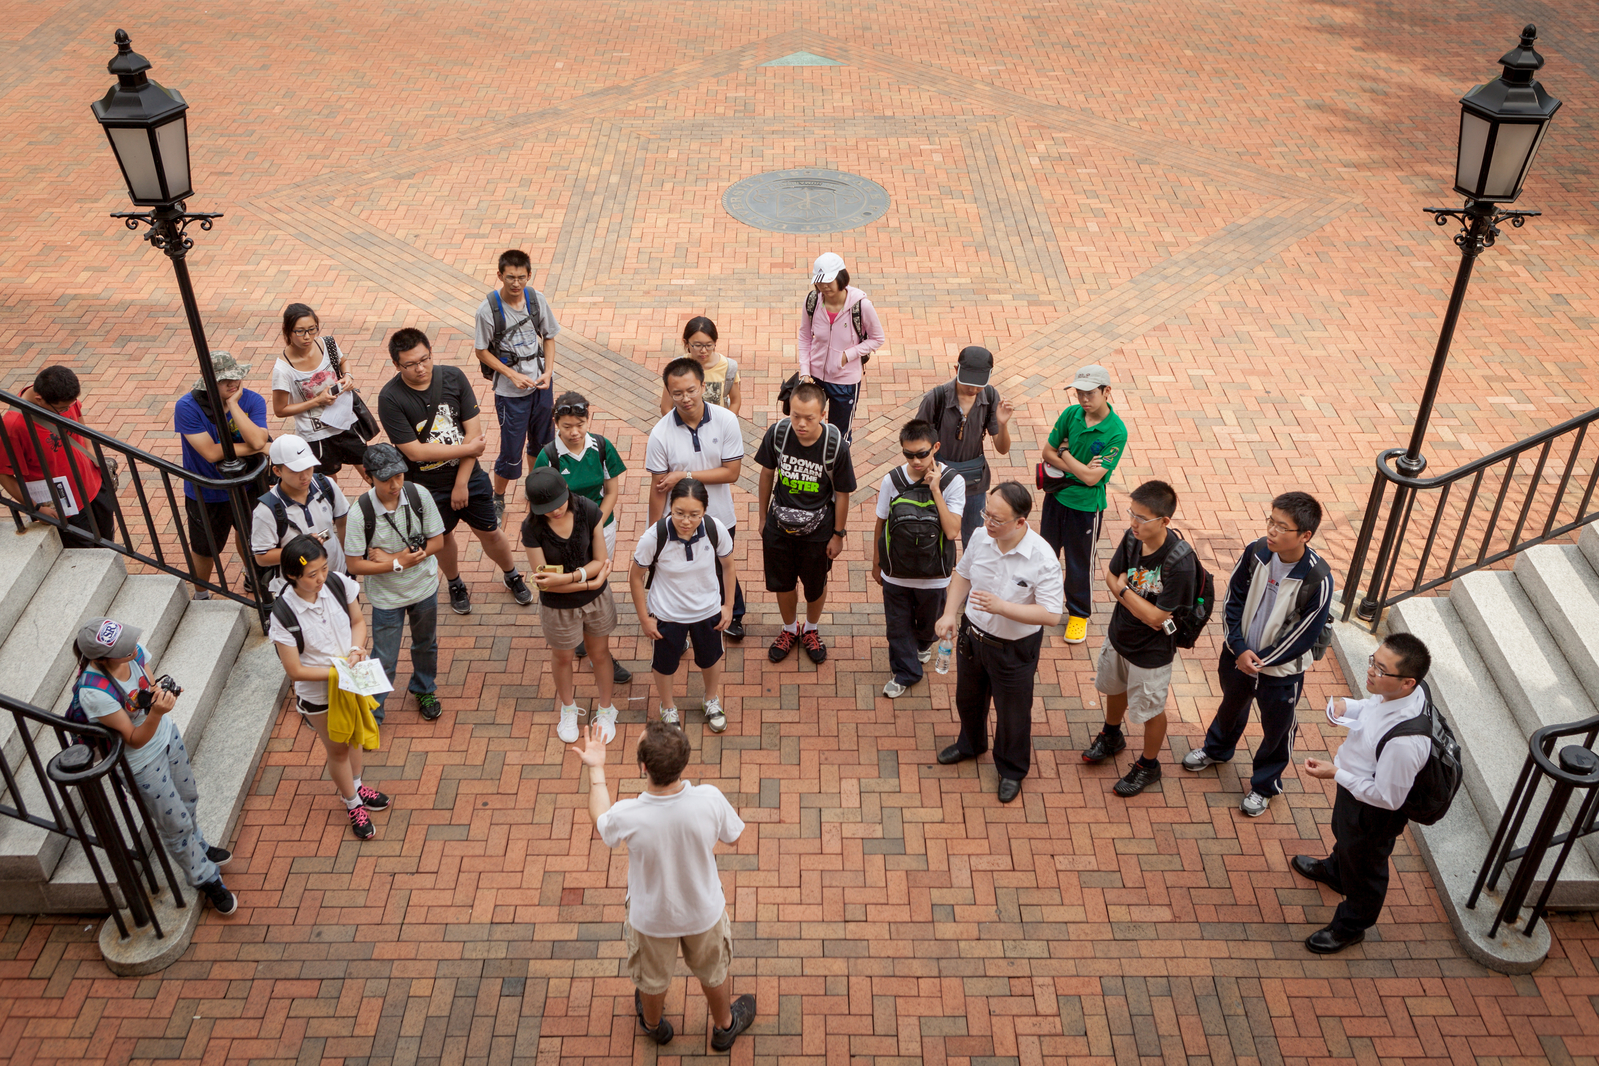 Student Tour, Mark Hoover, Office of Admissions